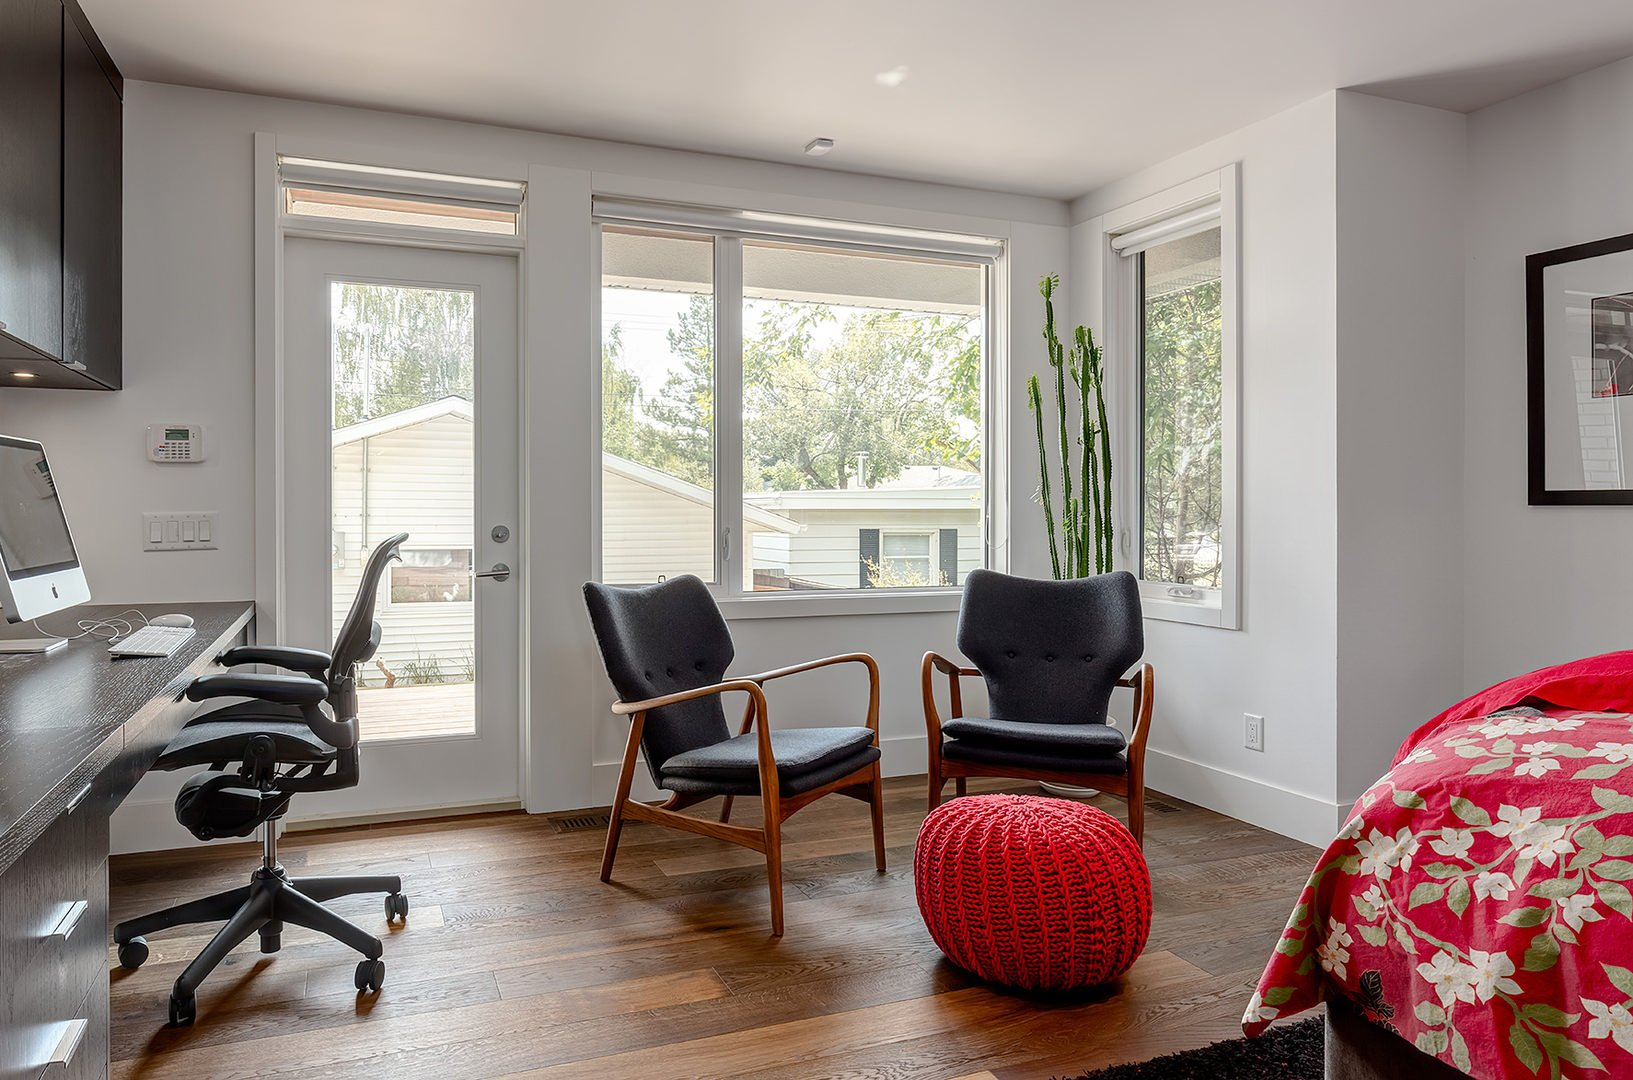 Airy home office with a seating area showcasing a pair of black wingback chairs and a red woven ottoman. It has a dark wood office desk with matching floating cabinets fixed on the white walls.